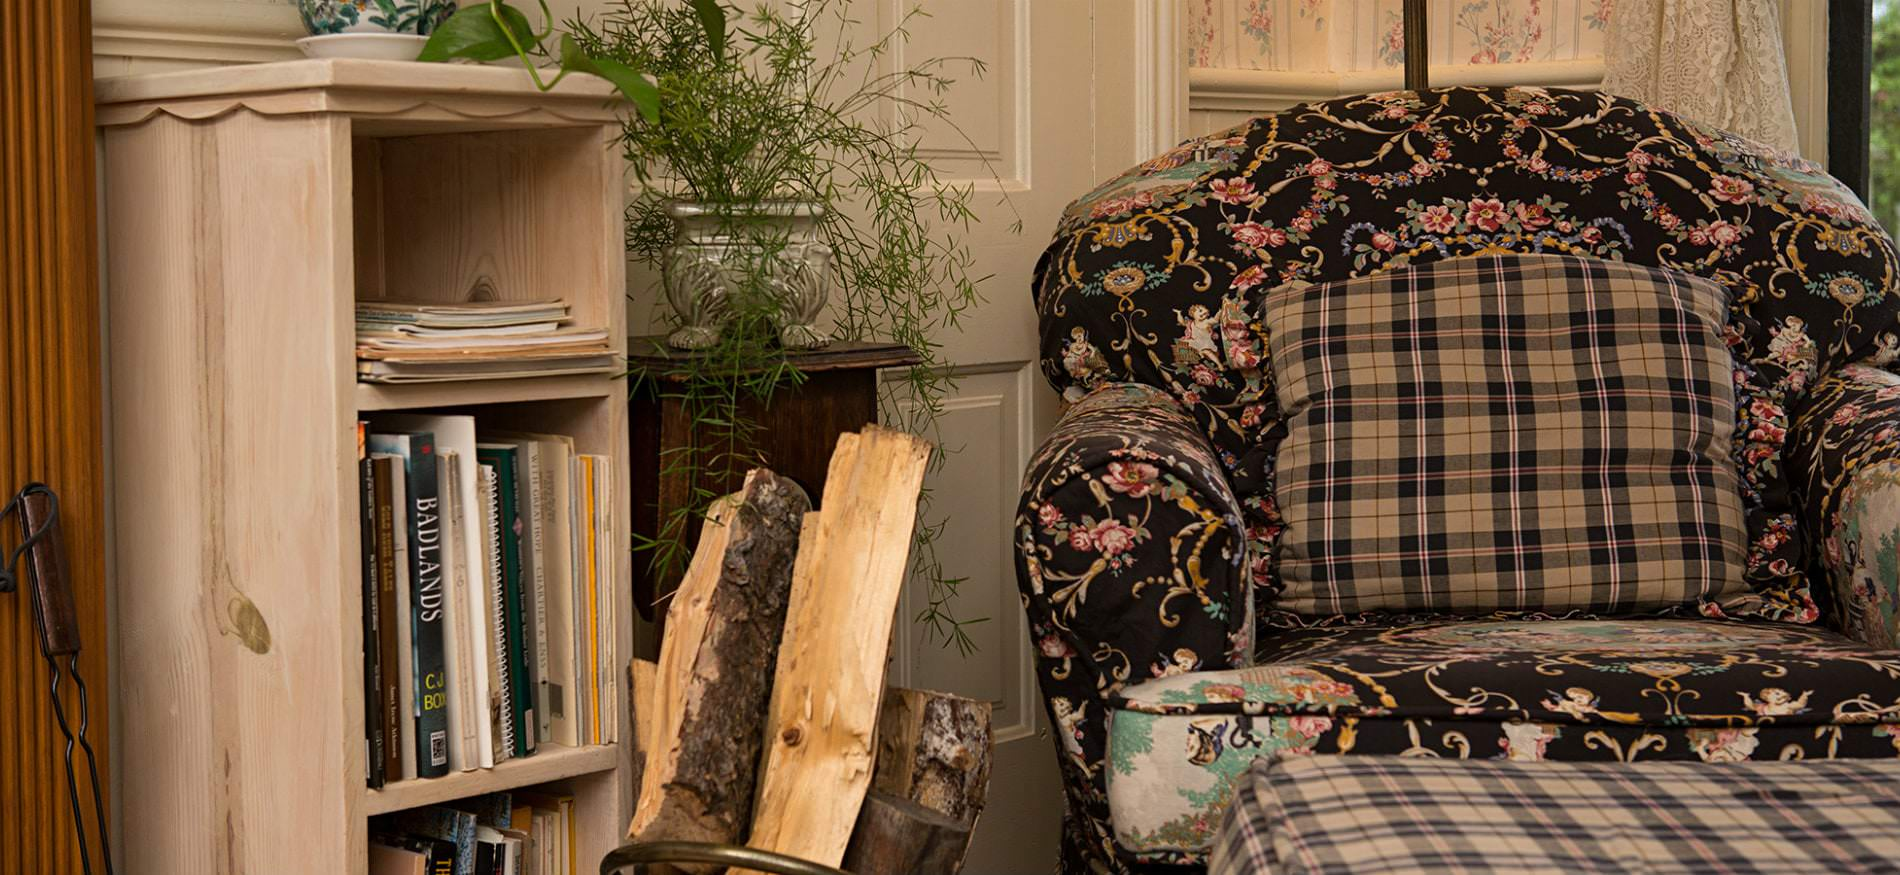 Black and pink floral and plaid chair with ottoman next to a wood shelf filled with books